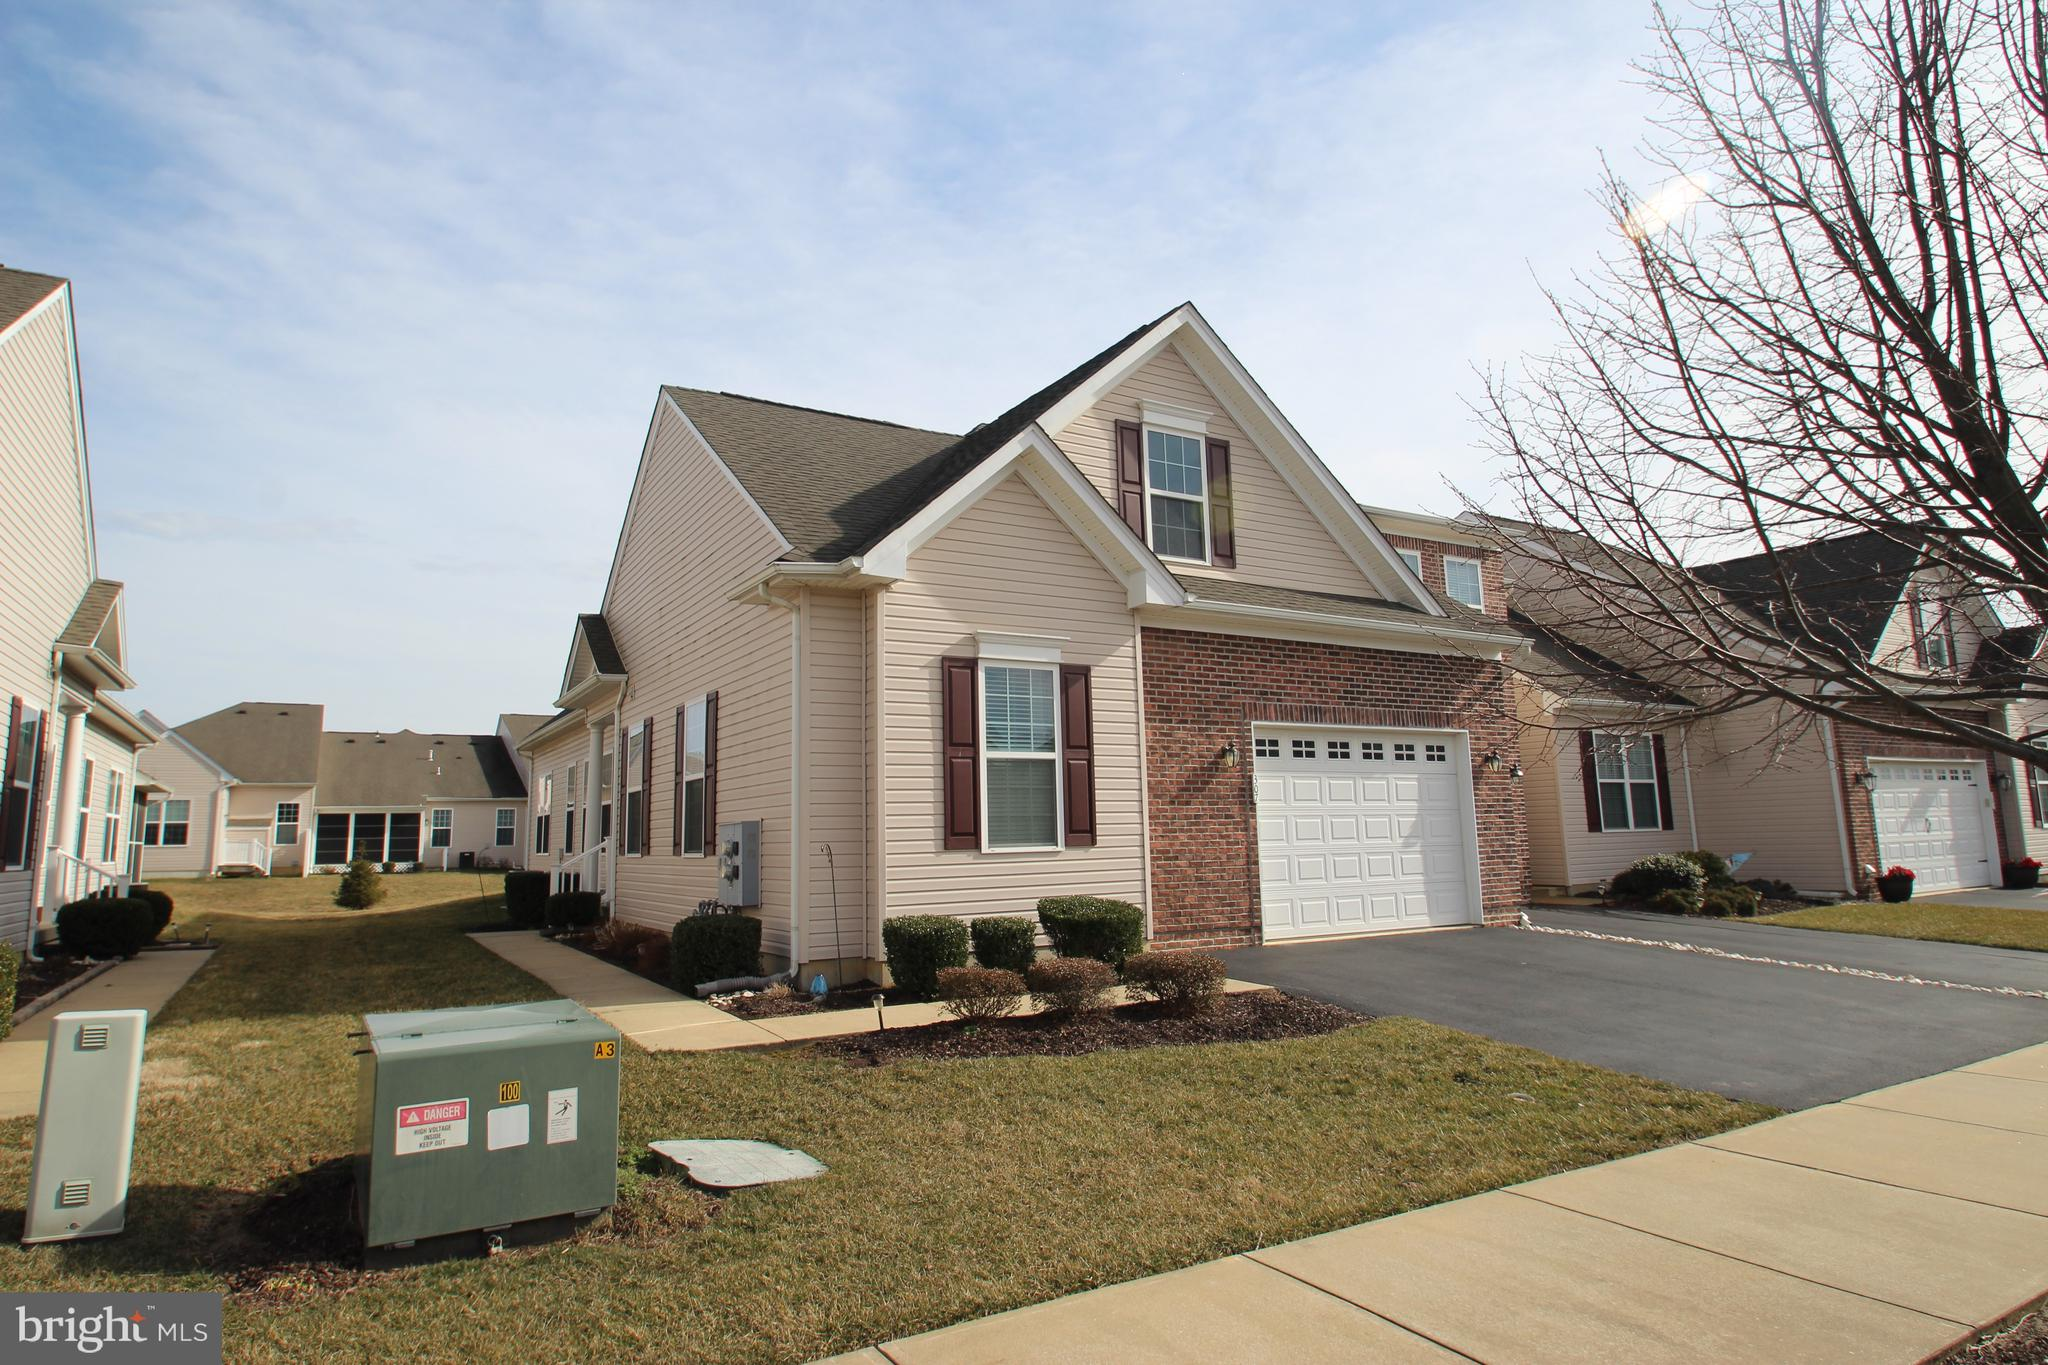 End unit home in wonderful 55+ neighborhood of Spring Arbor!  This floor plan offers a spacious layout with formal living and dining rooms, large kitchen with recessed lights, 42' maple cabinets and tile back splash and a pantry.  Enjoy the brick patio off of the sliding glass door from the dining room  The master bedroom features a nice sized adjoining sitting area, large walk-in closet and full bath with 5' shower, and tile floor. The second bedroom is on the opposite side of the home and is extra large due to the option for an oversized one car garage rather than a 2 car garage.  Walking distance to the very active community clubhouse featuring outdoor pool, social rooms and lounges, exercise facility, kitchen, putting green, bocce ball court, organized activities, etc.  Easy to show, make your appointment today!